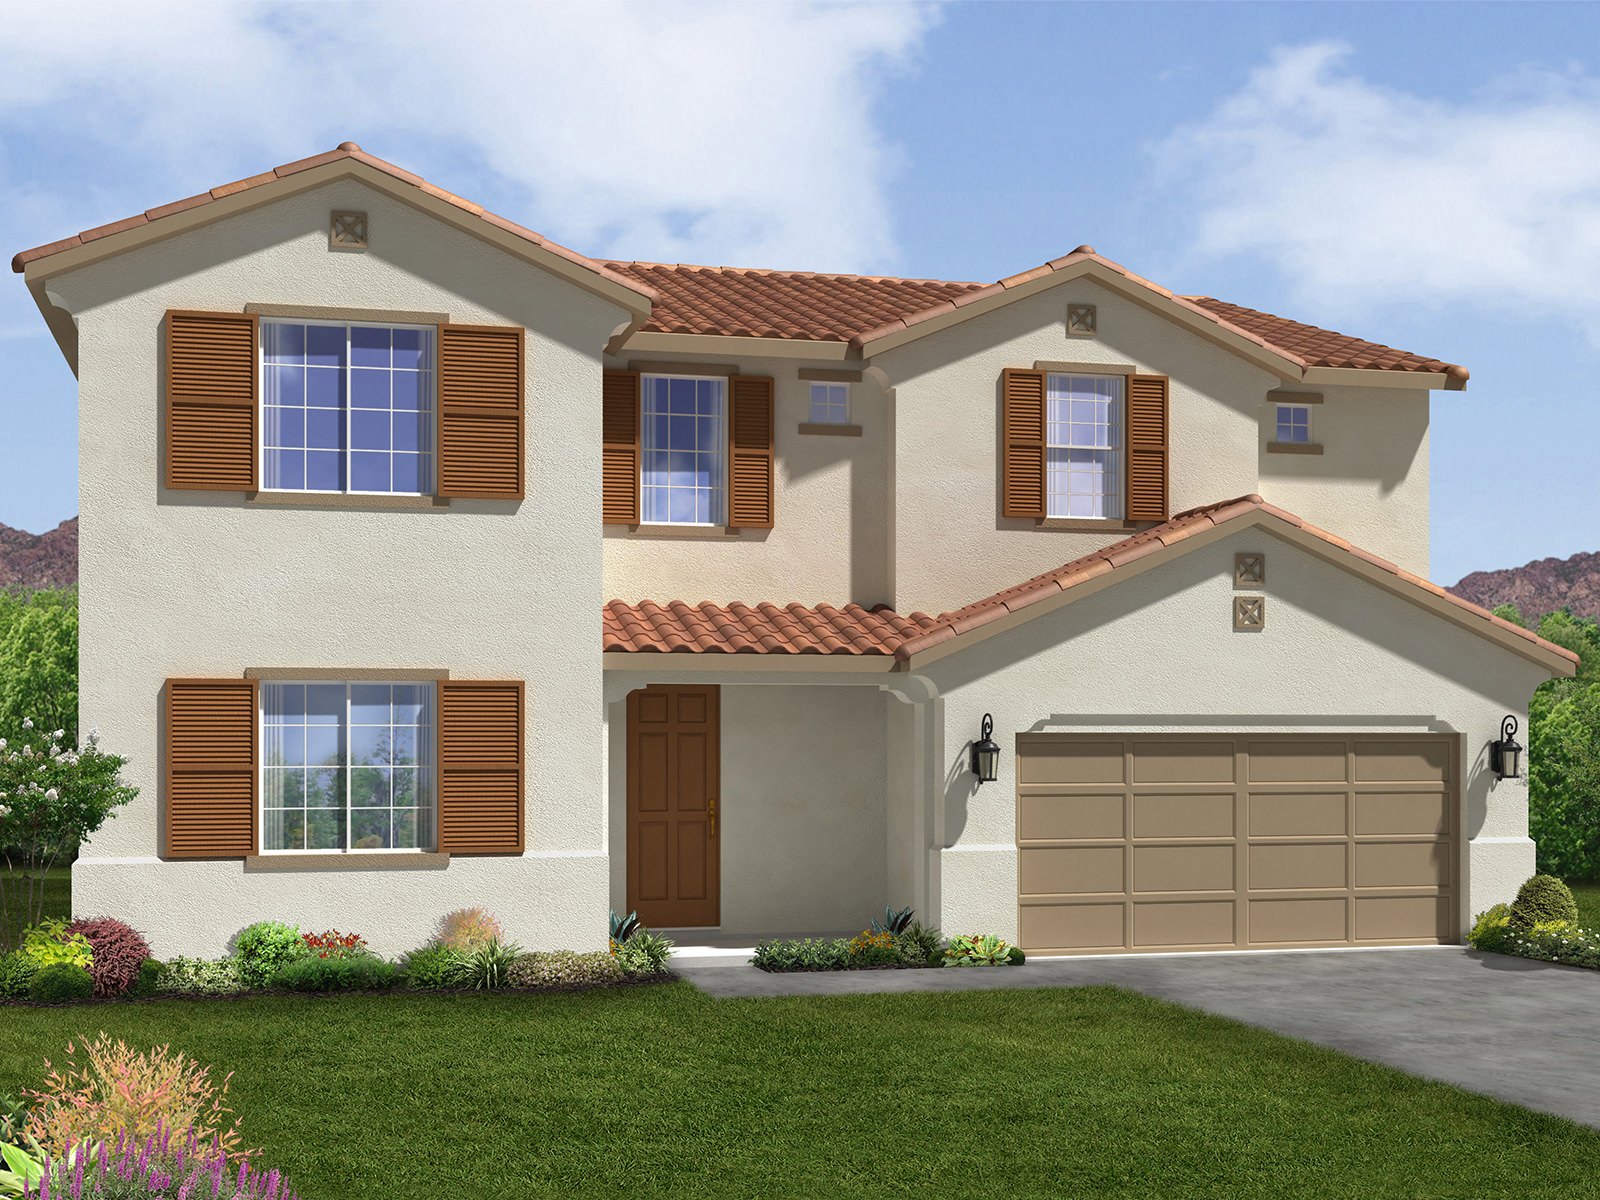 The valencia model 4br 4ba homes for sale in bakersfield for Custom home builders bakersfield ca